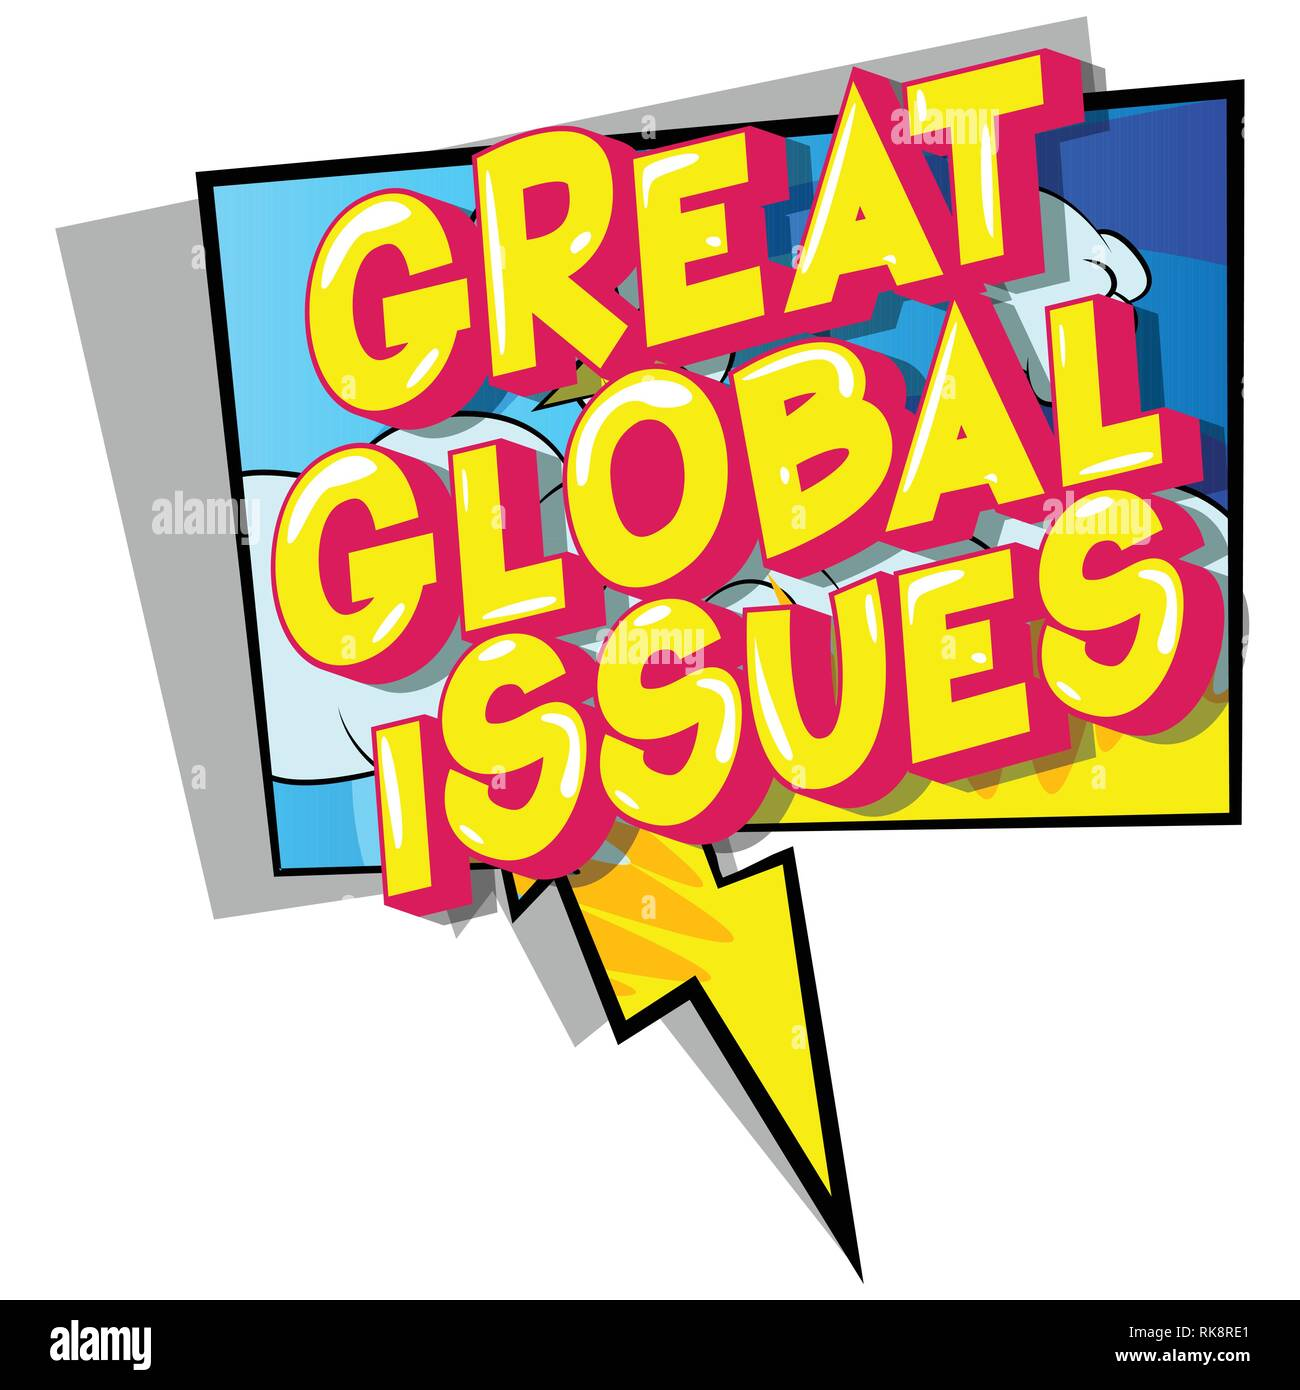 Great Global Issues - Vector illustrated comic book style phrase on abstract background. - Stock Image